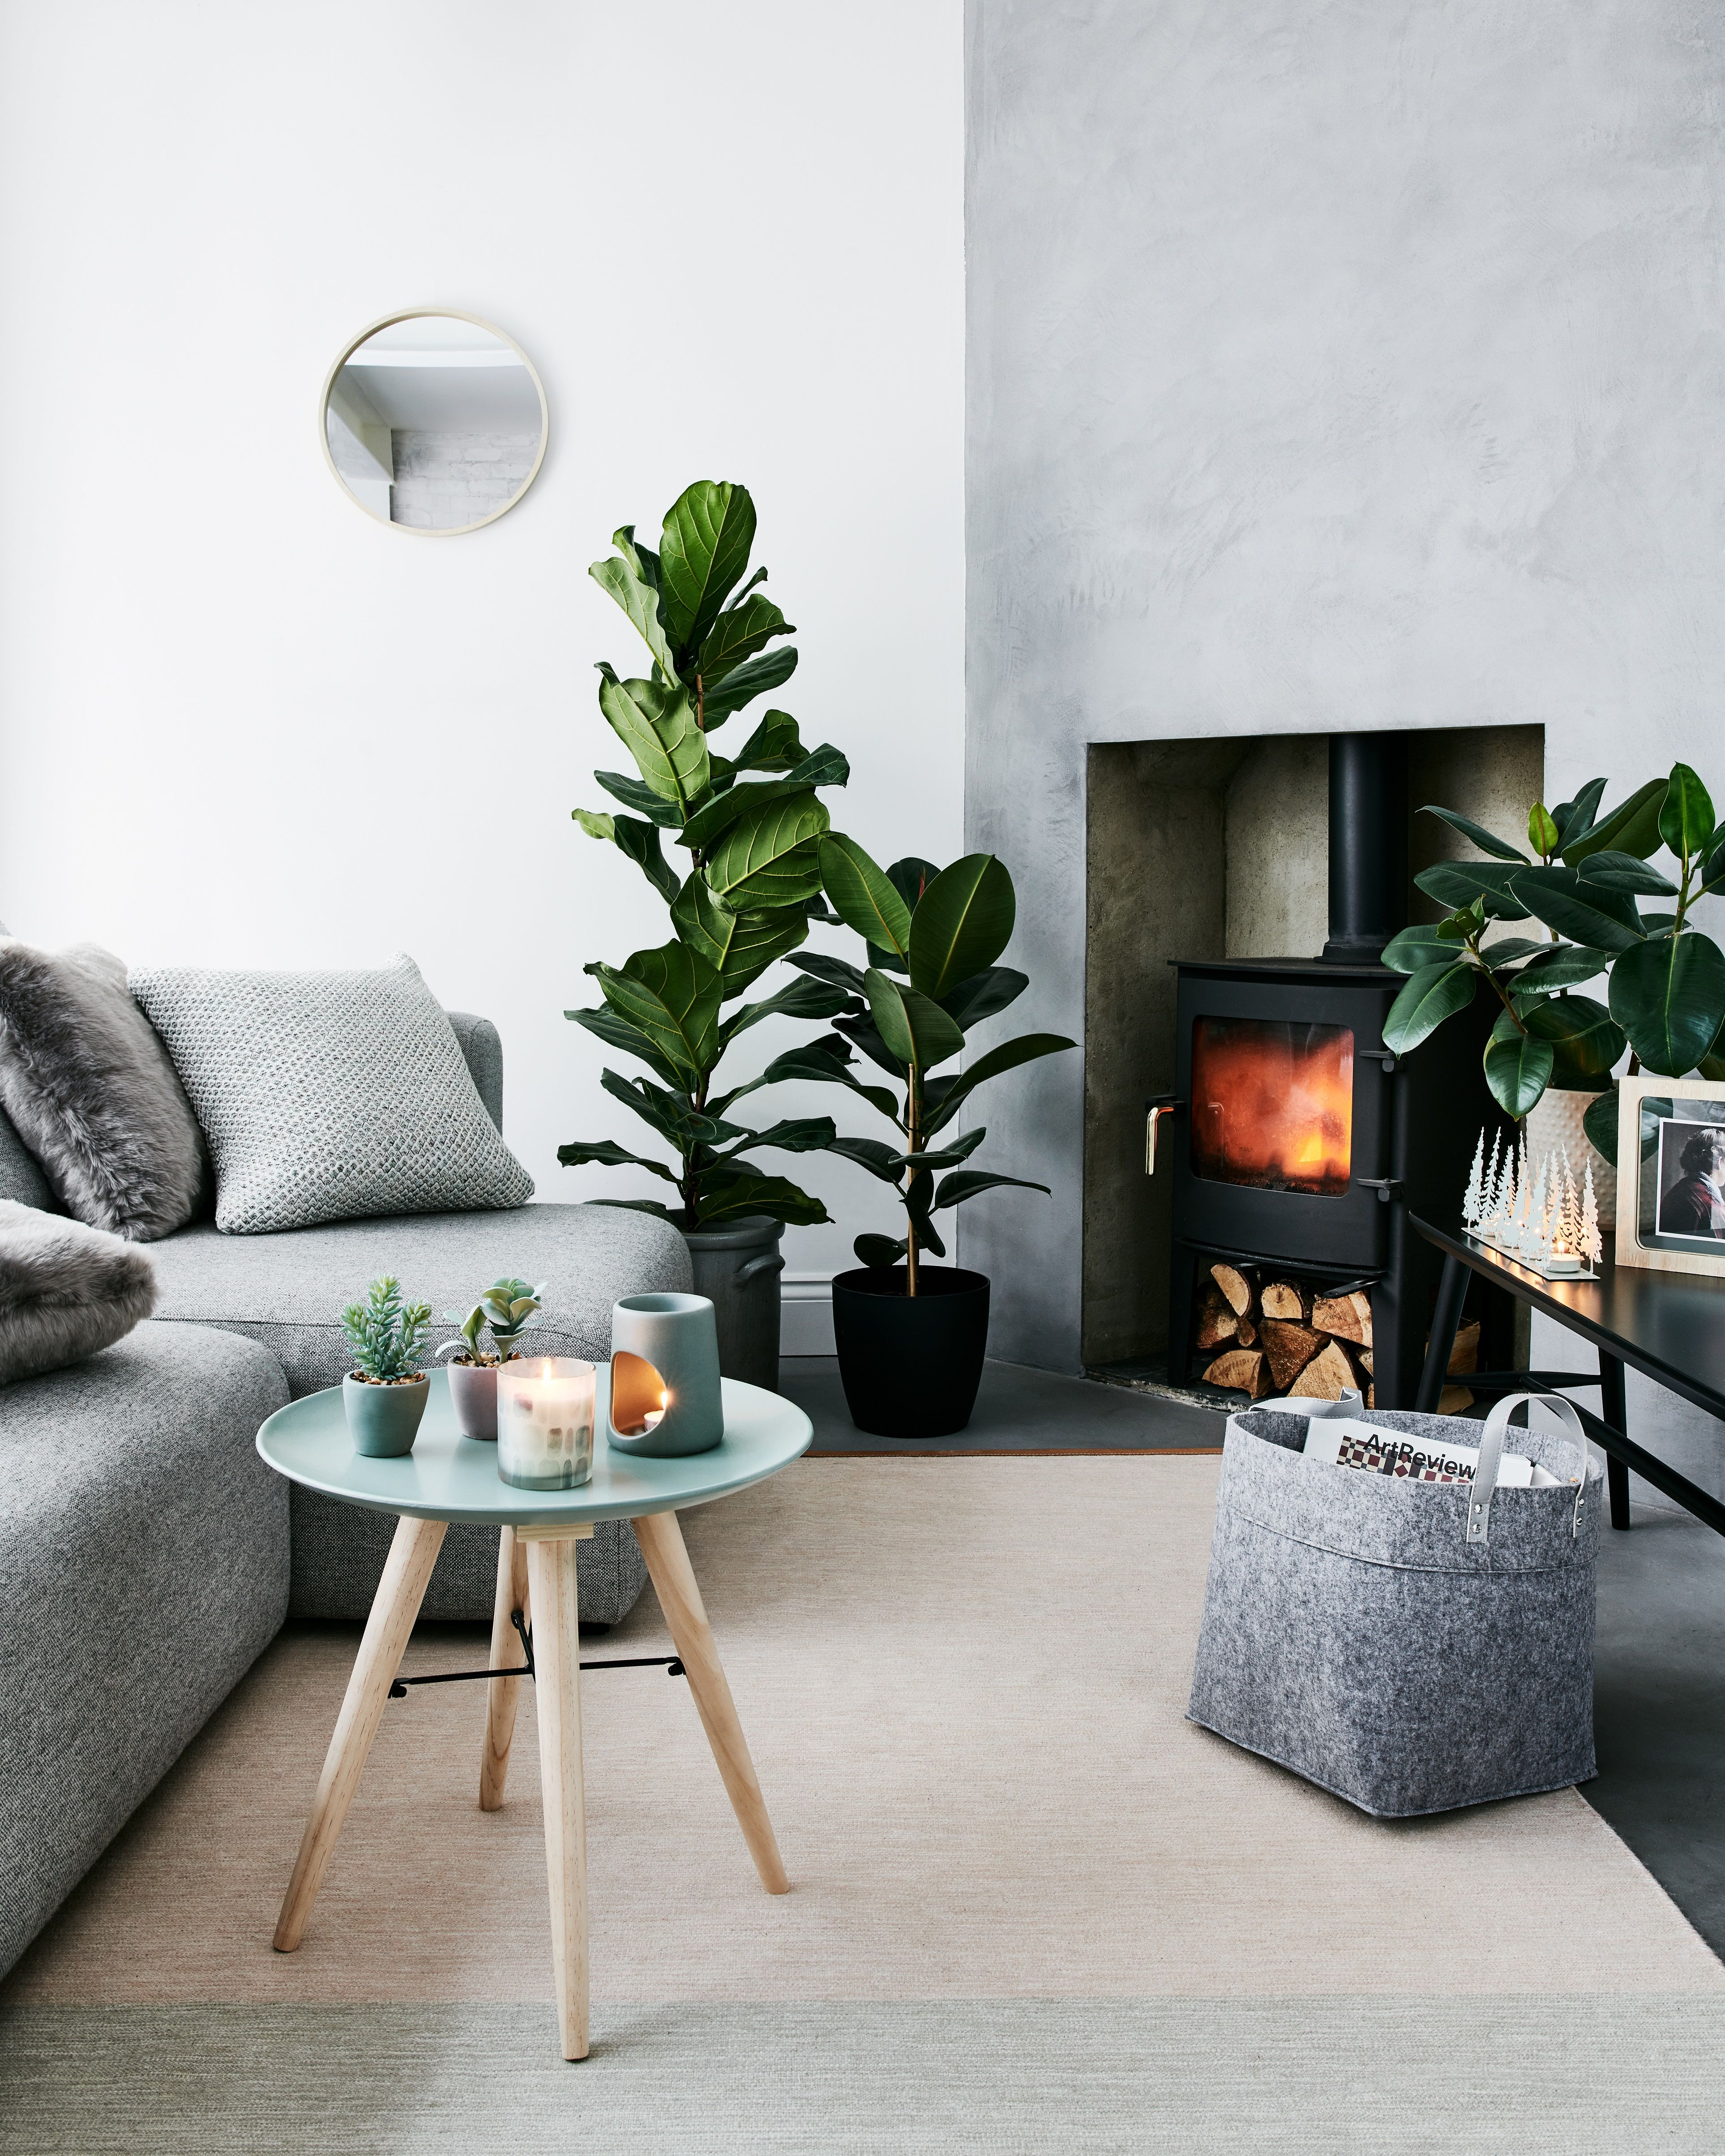 Rural Retreats Sainsburys Home Trends Faux Plants Soft Furnishings Artificial